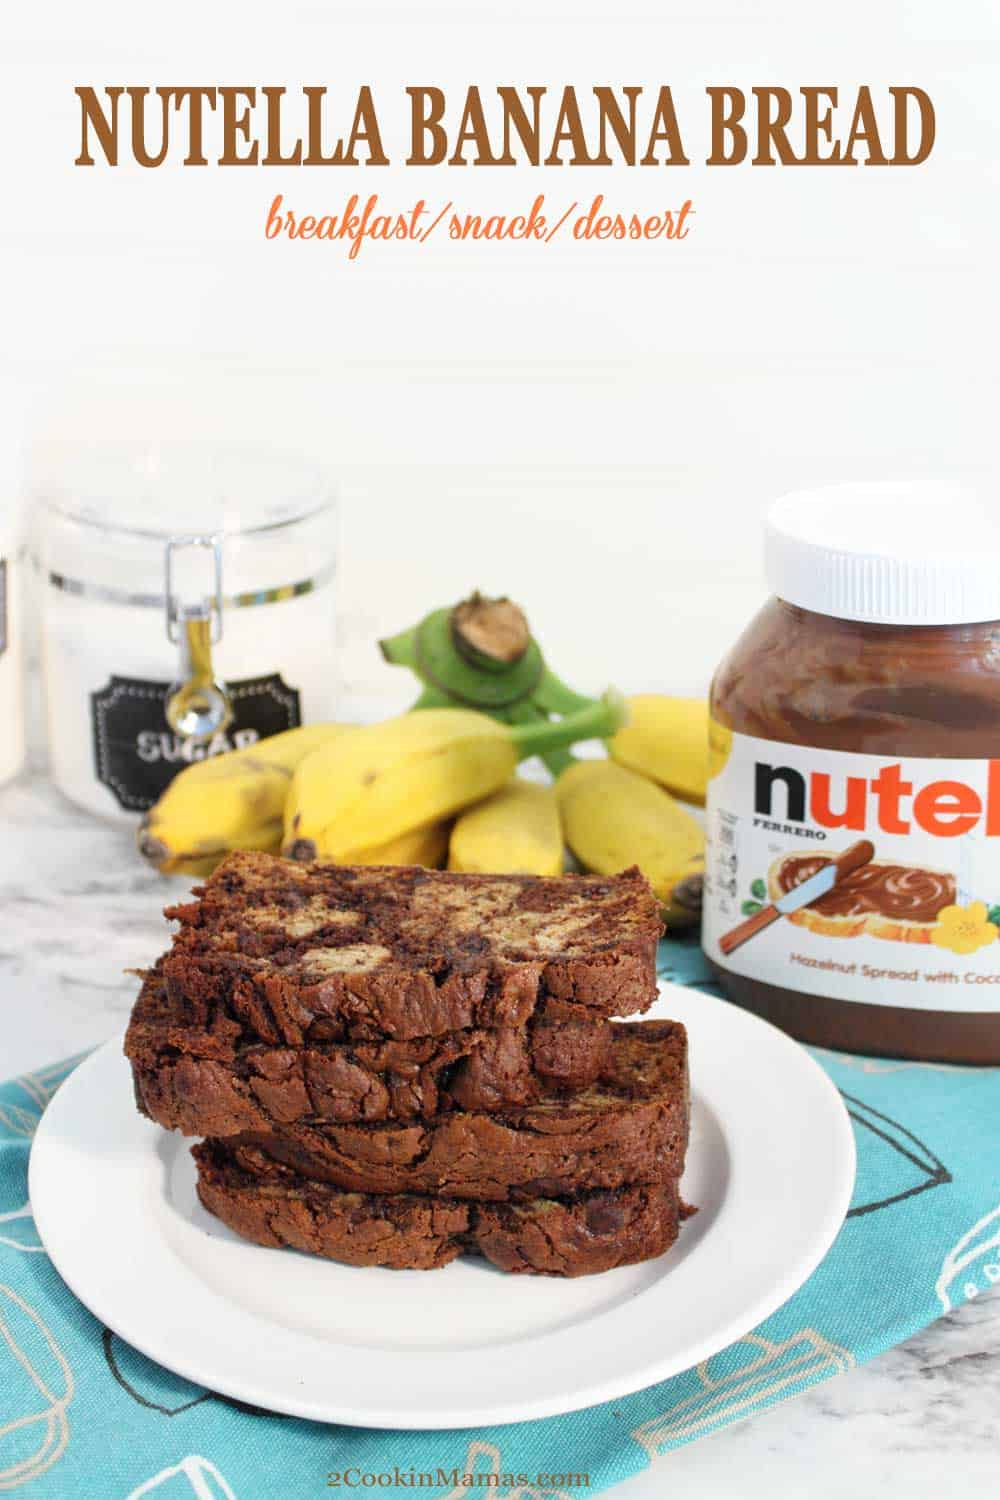 A sweet & delicious banana bread with a surprise inside - Nutella! This Nutella Banana Bread has all the moist and delicious taste of a banana bread with loads of everyone\'s favorite spread swirled throughout. Serve it as a special breakfast treat, a snack or top it with a chocolate glaze for a fabulous dessert.#bananabread #quickbread #bananas #nutella #breakfast #dessert #snack #recipe